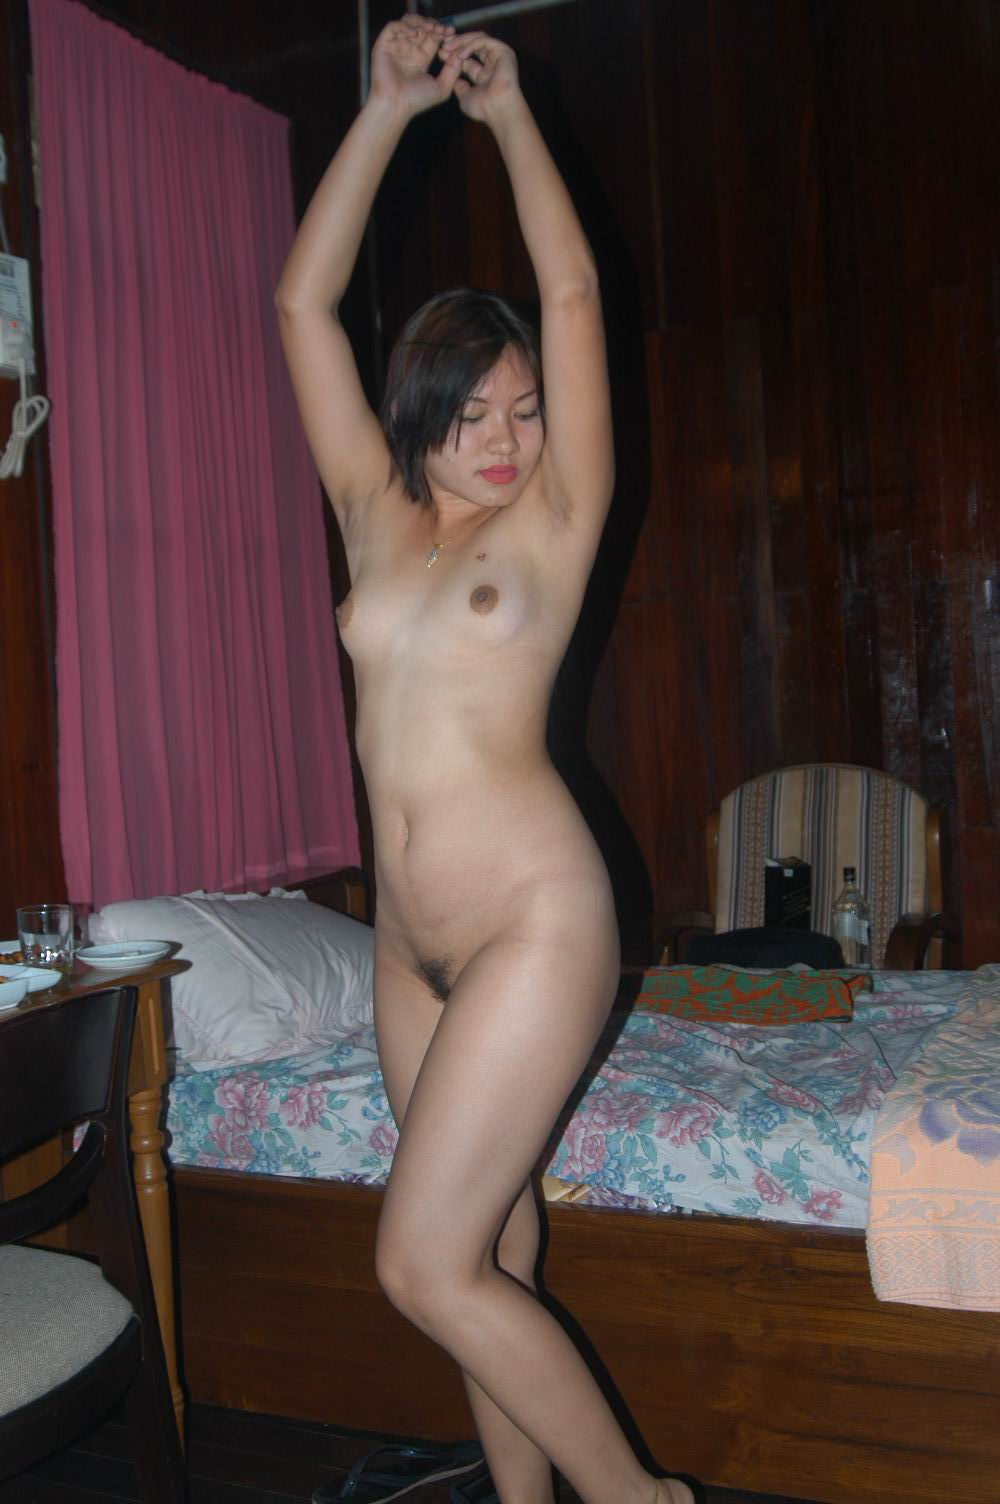 Hot young asian girl nude